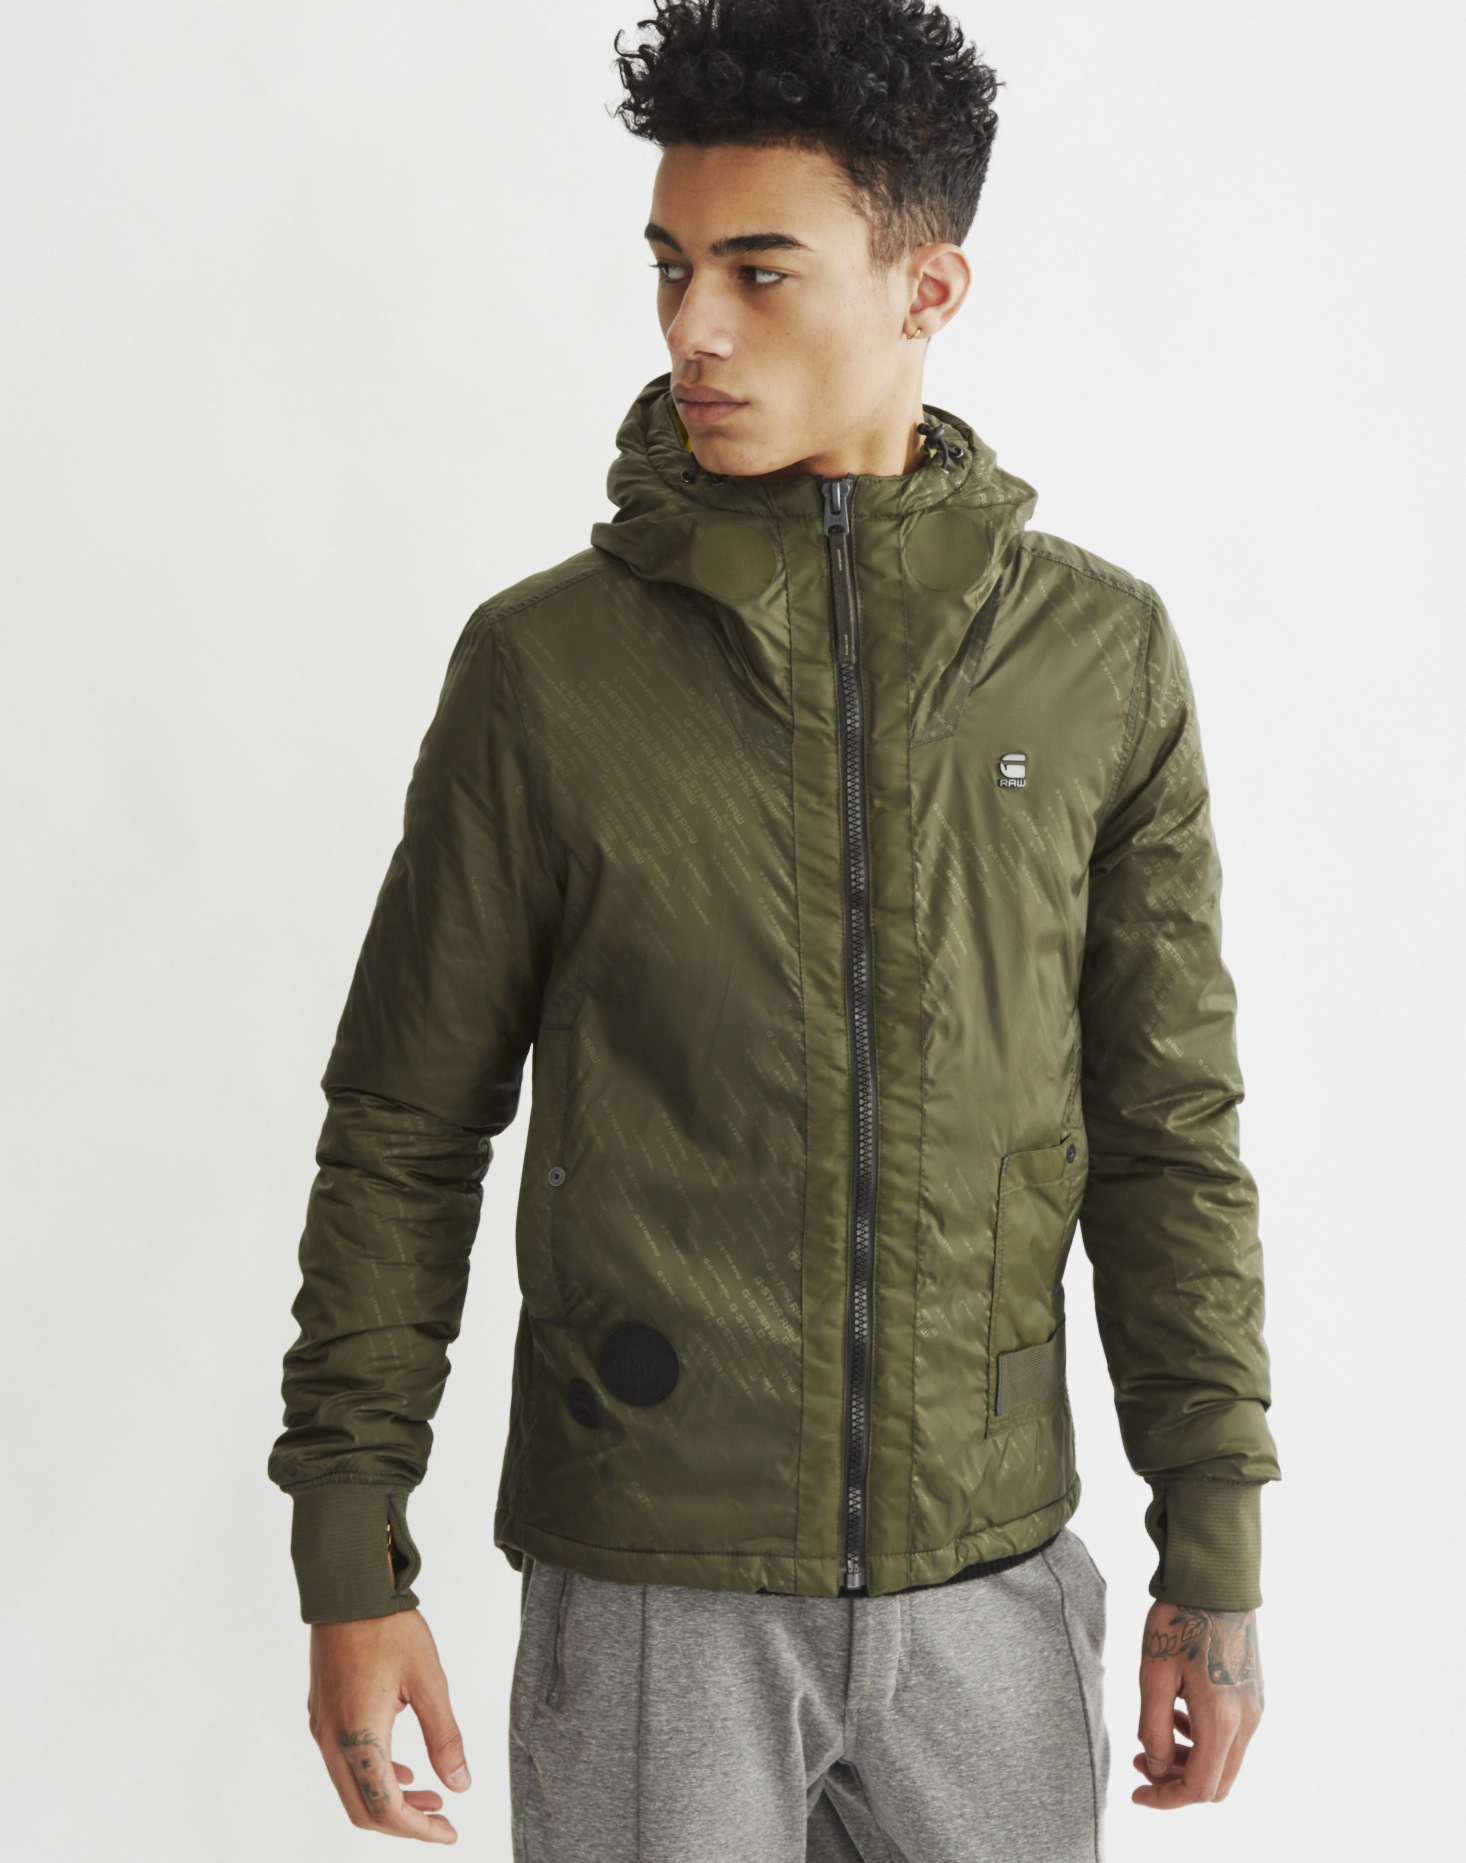 G Star Raw Submarine Parka Green In Green For Men Lyst